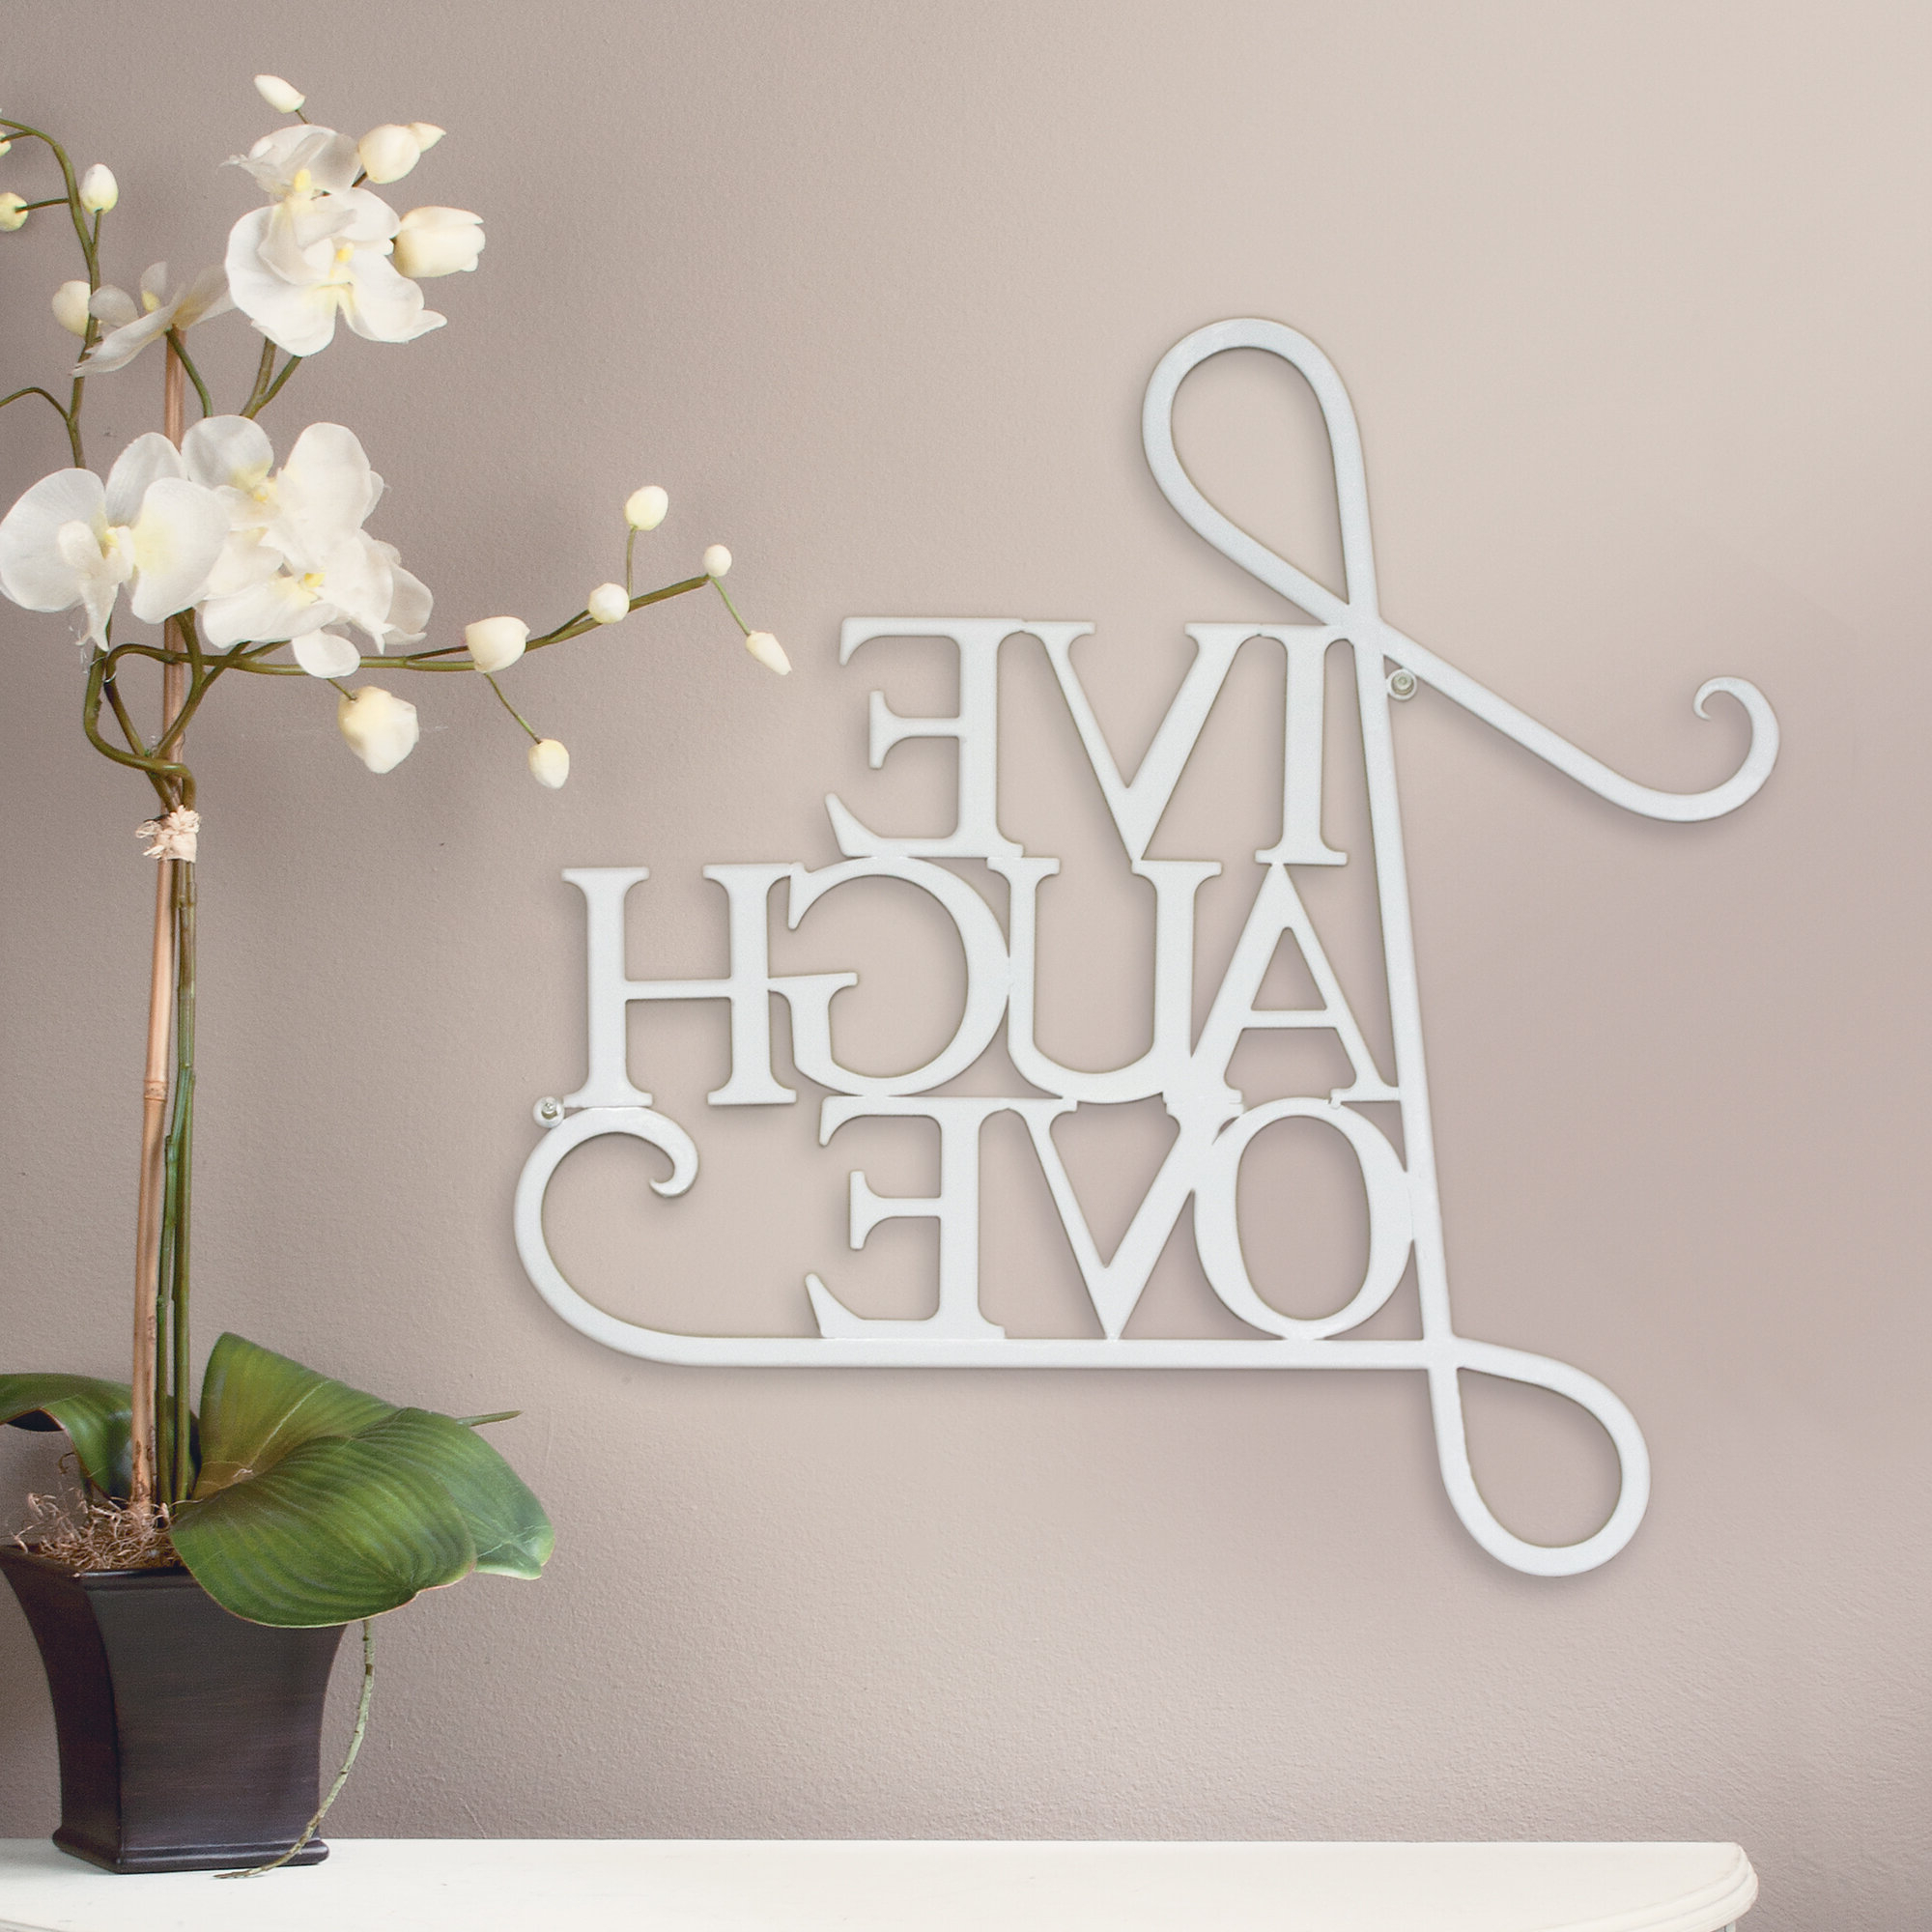 2019 Faith, Hope, Love Raised Sign Wall Decor By Winston Porter Intended For Winston Porter Live, Laugh, Love Antique Copper Wall Decor & Reviews (View 7 of 20)